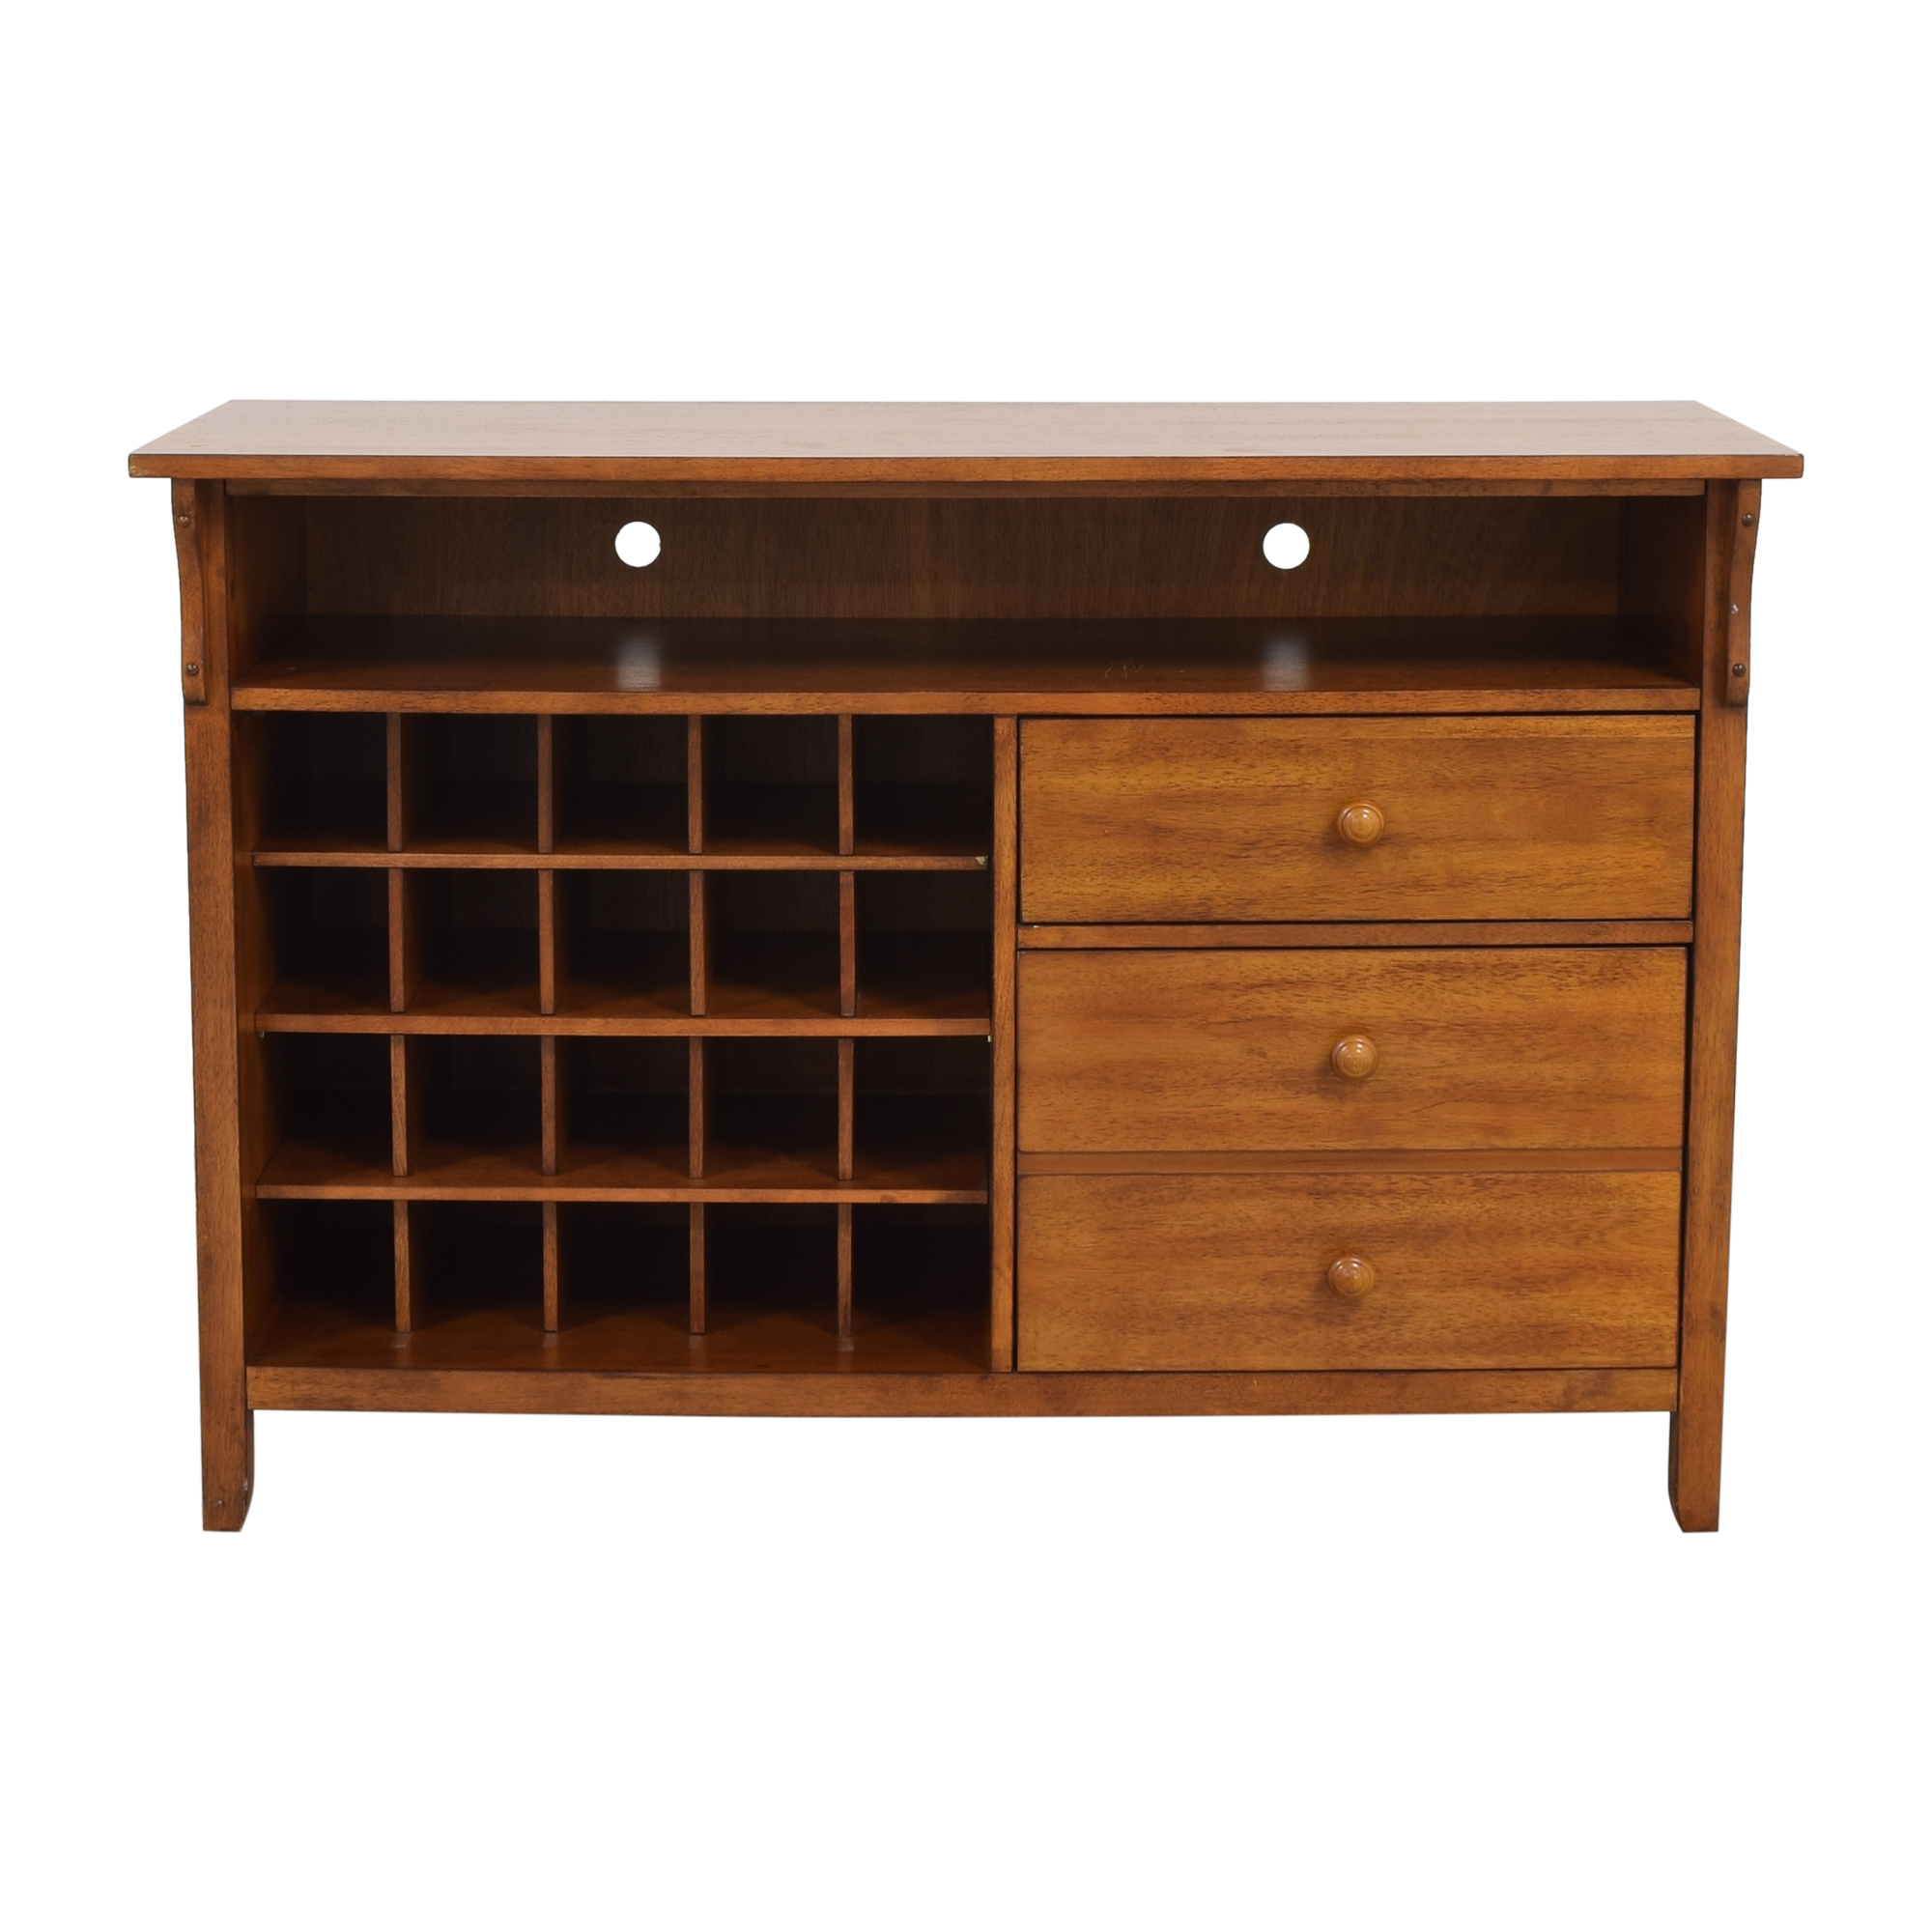 Jofran Jofran Sideboard with Wine Rack for sale